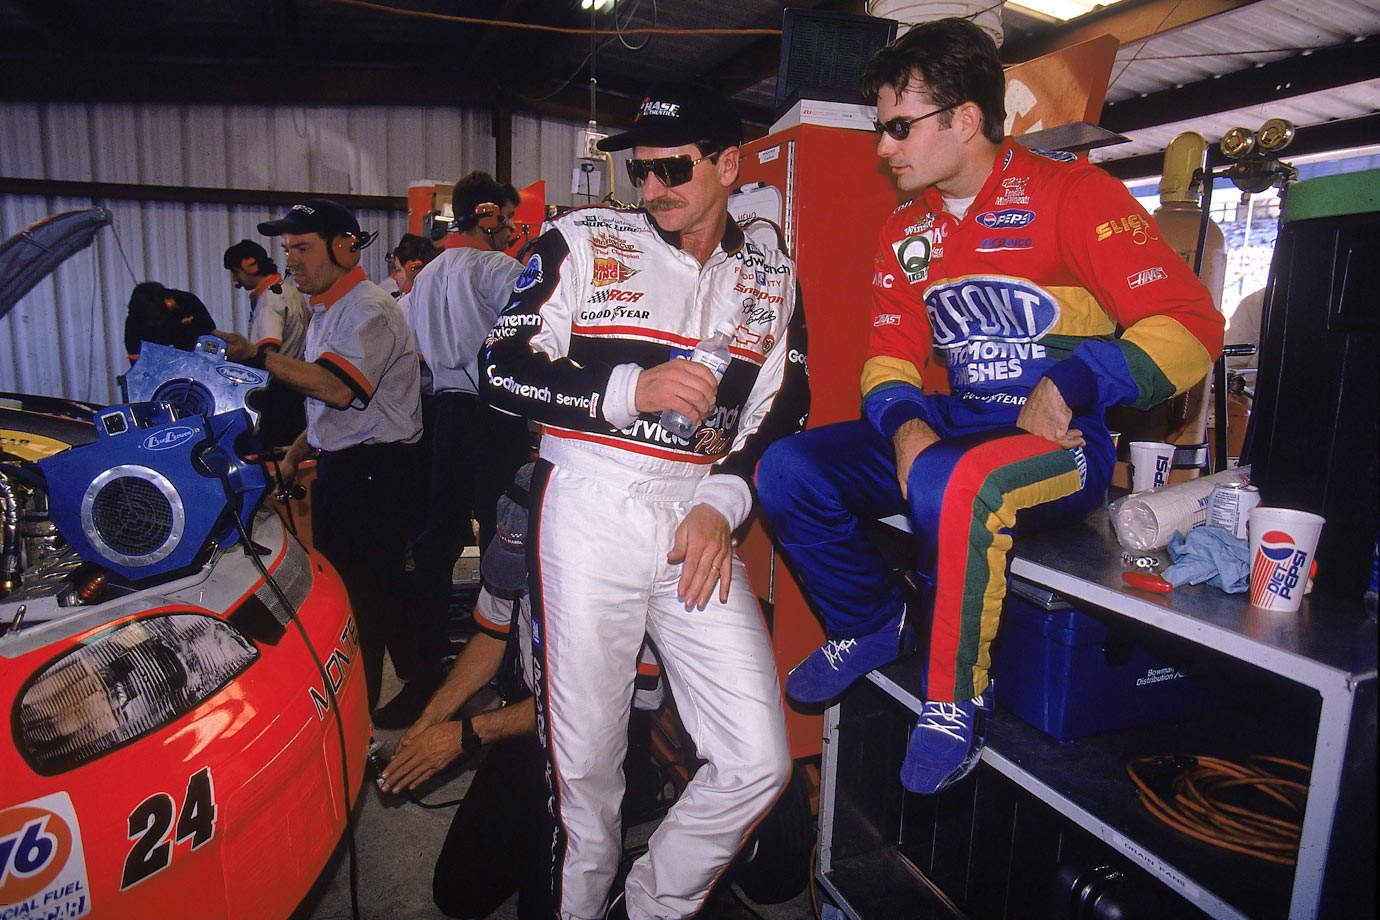 Dale Earnhardt and Jeff Gordon check out Gordon's car in the garage before a race at Richmond International Raceway.